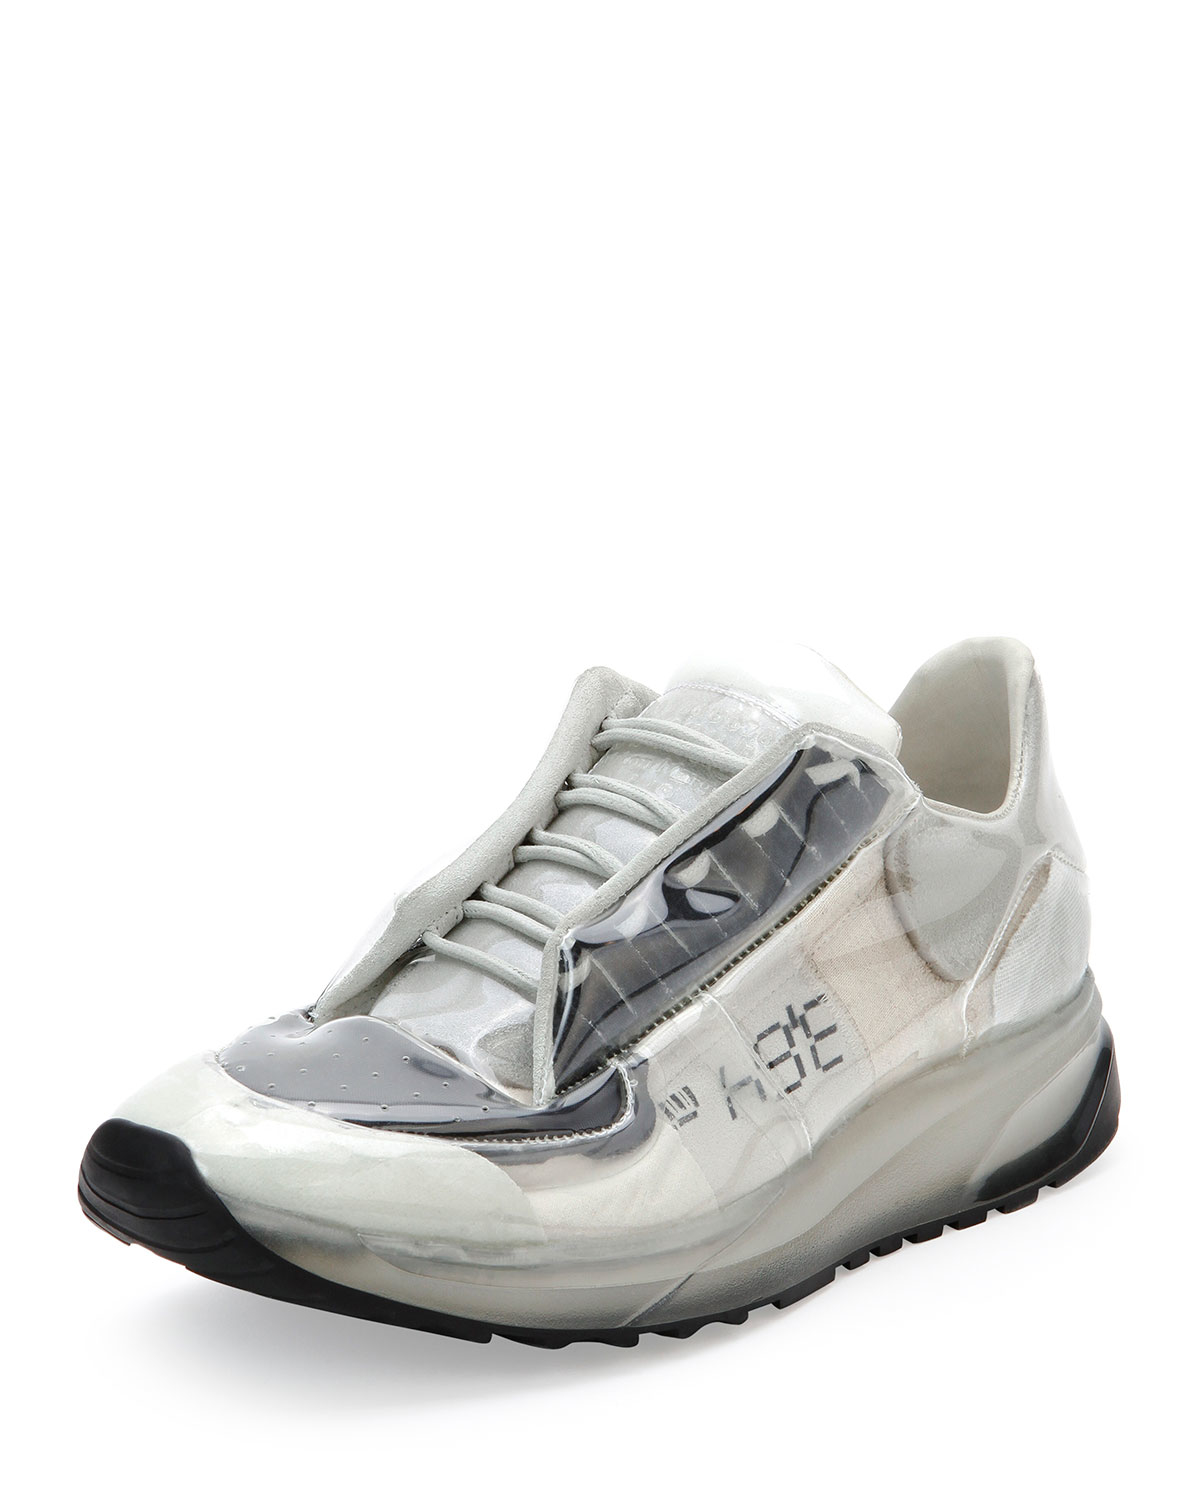 Maison margiela Transparent Lace-up Trainer Sneaker in ...